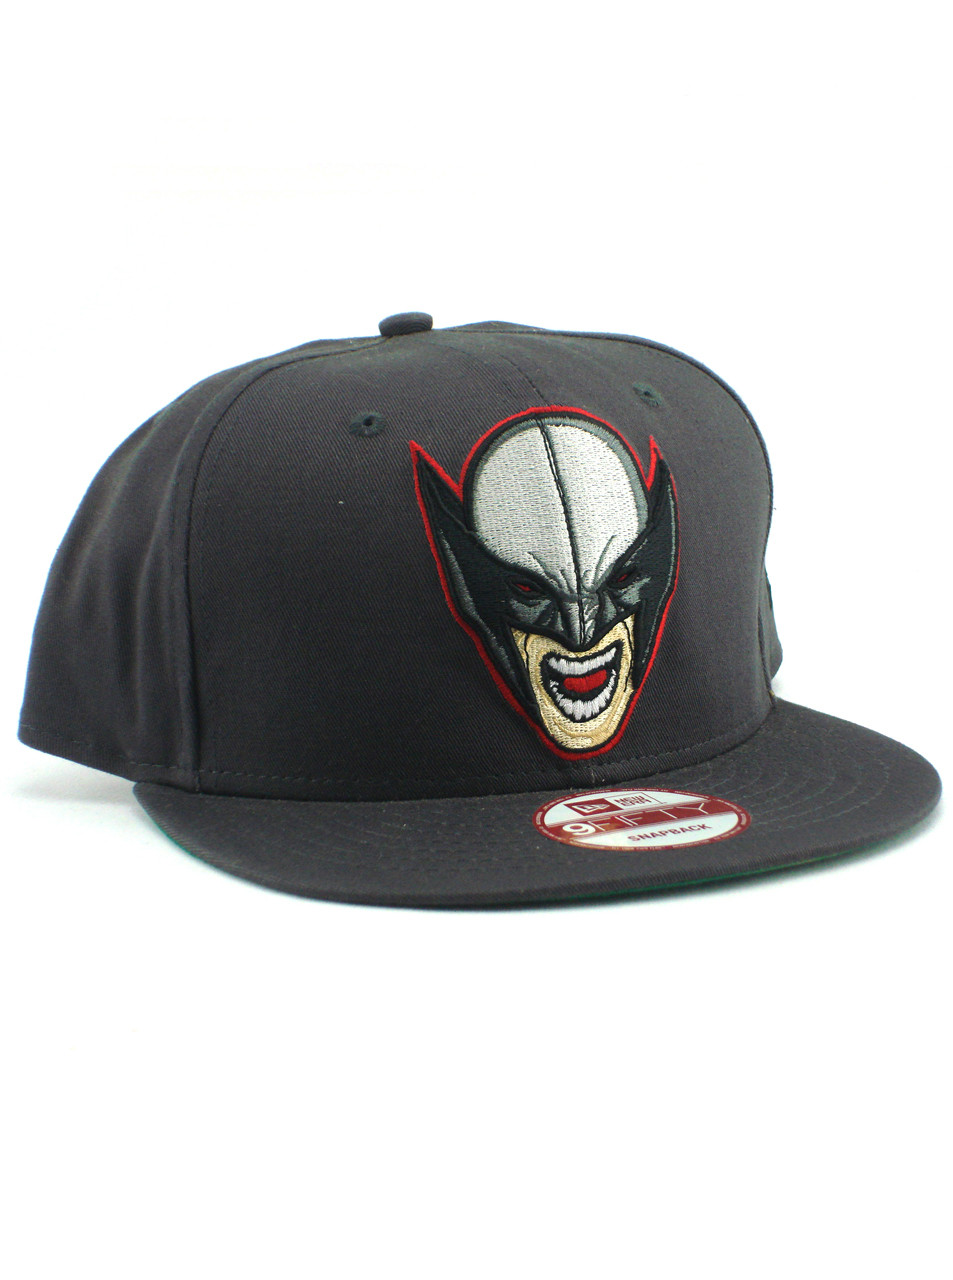 dff54491111 New Era Wolverine Hero Face 9fifty Snapback Hat View 1